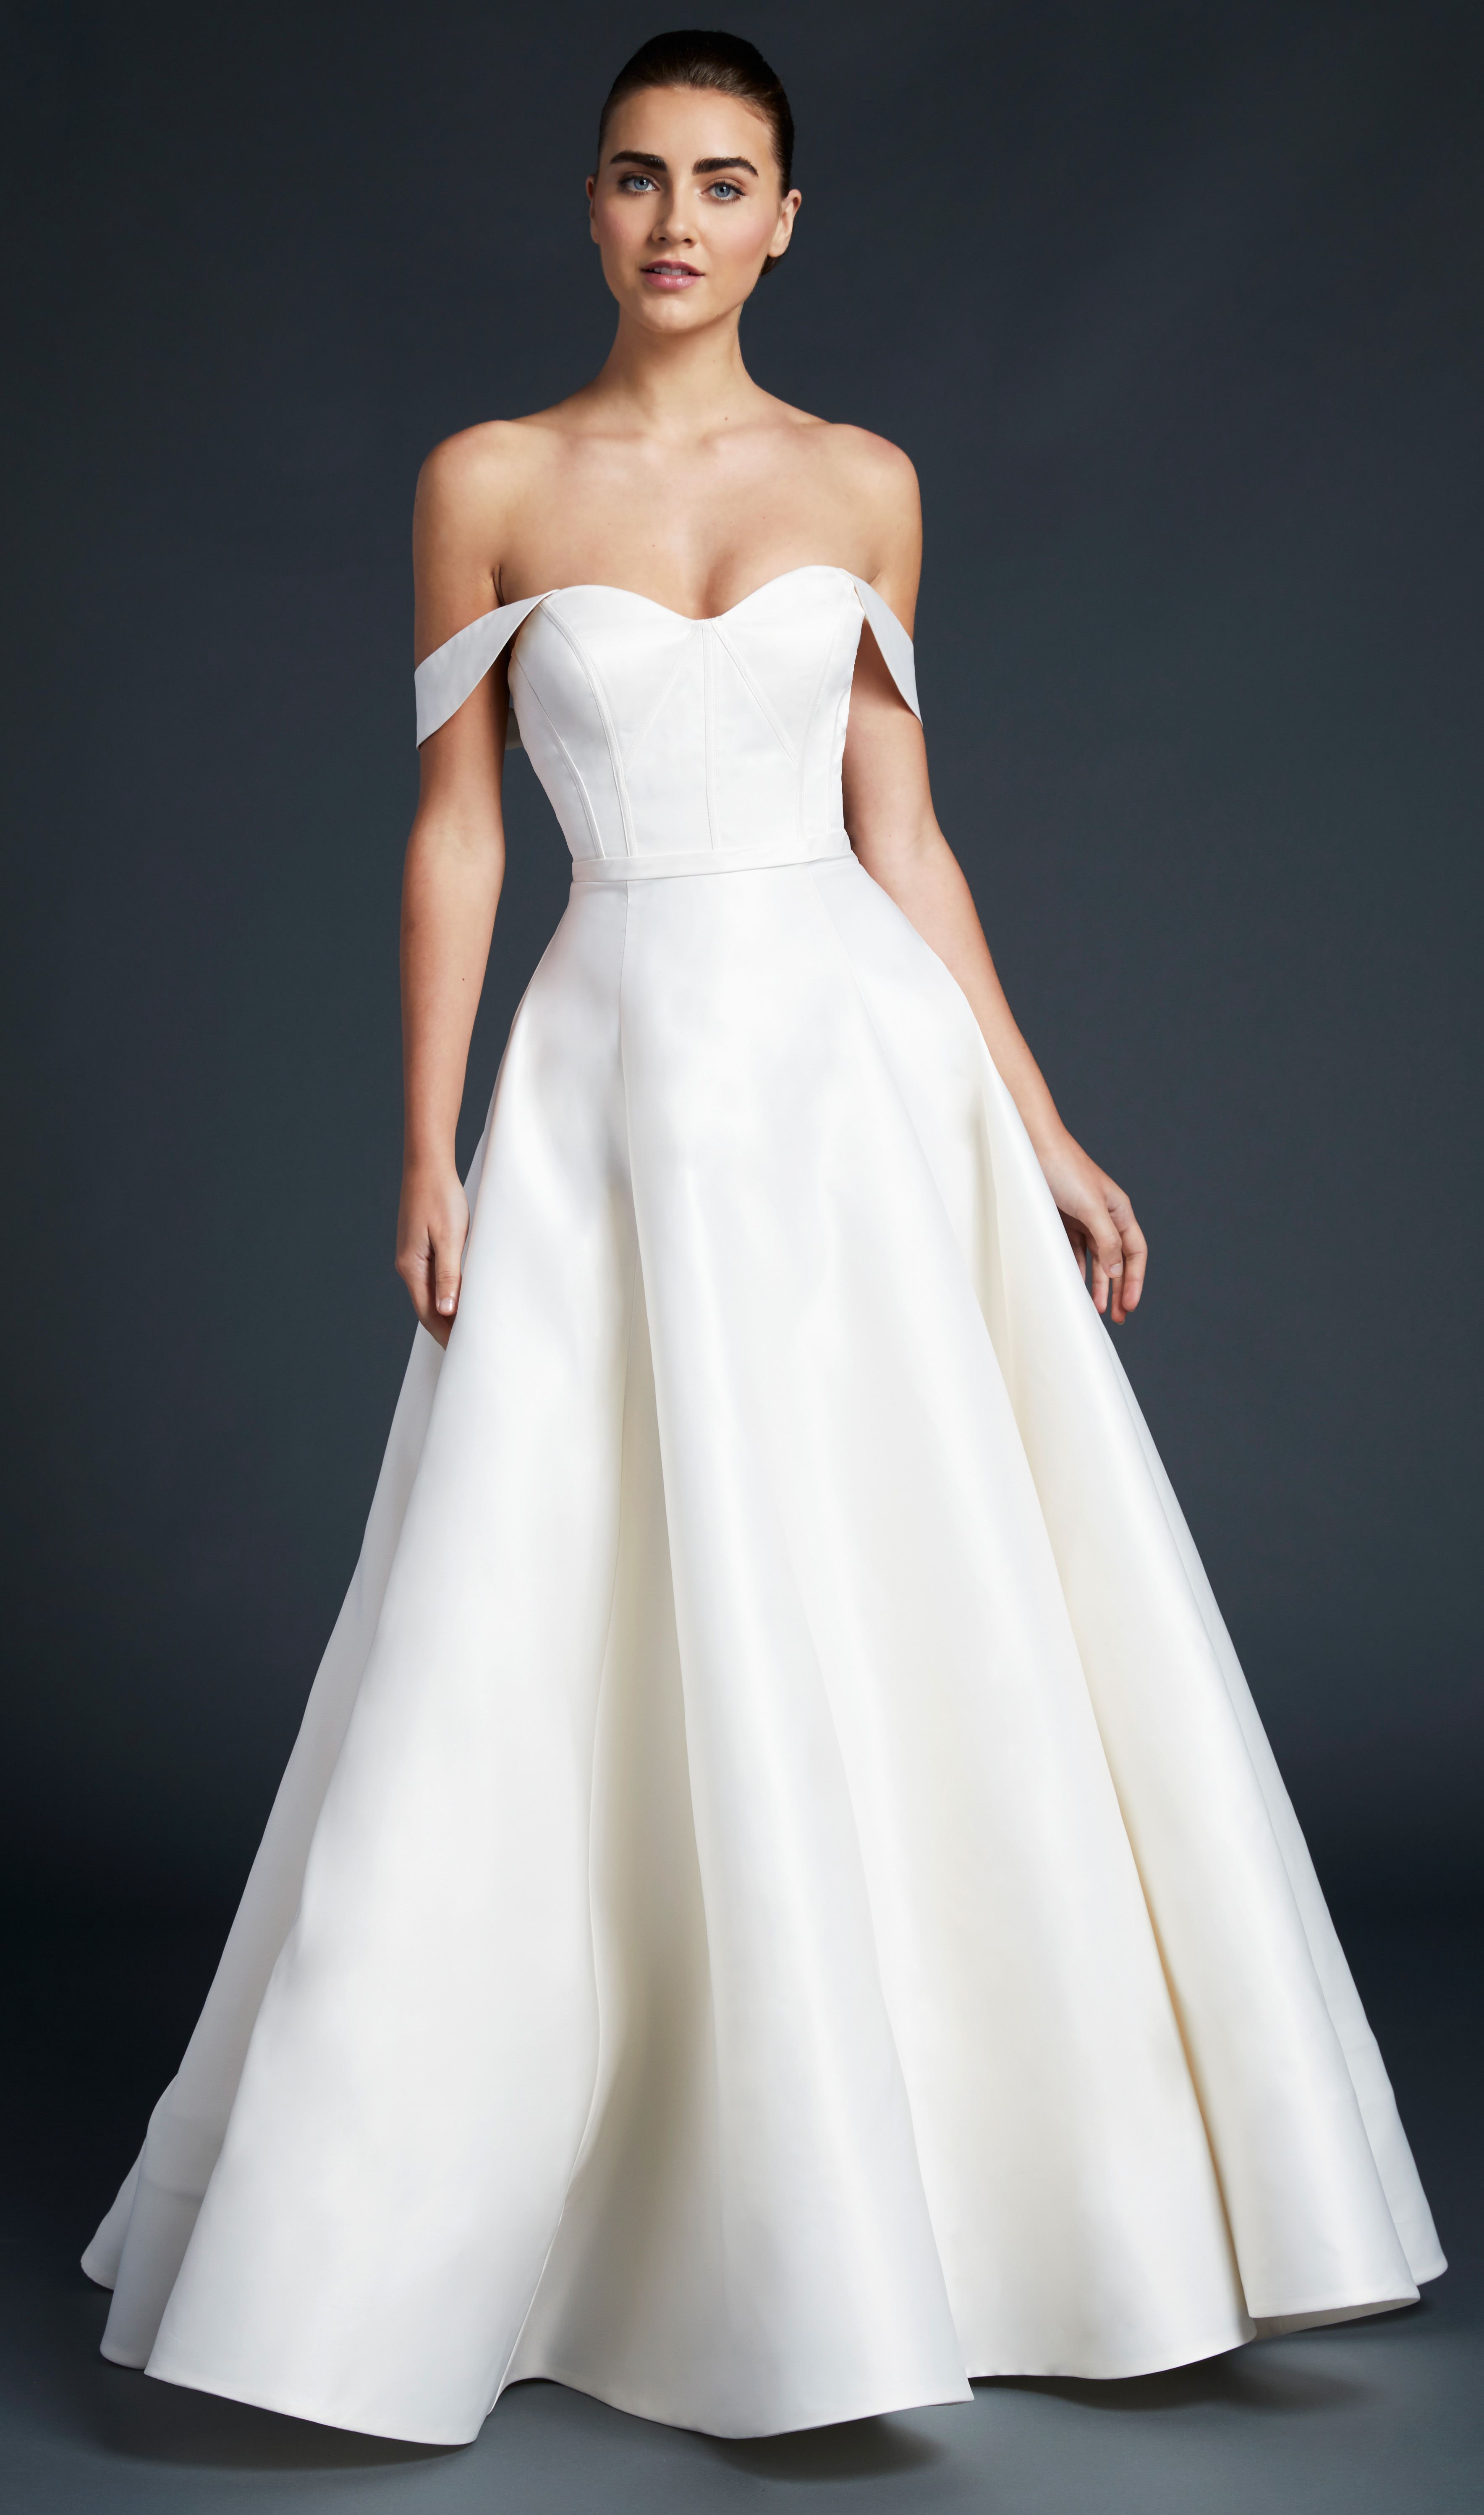 blue willow wedding dress off the shoulder sweetheart a-line